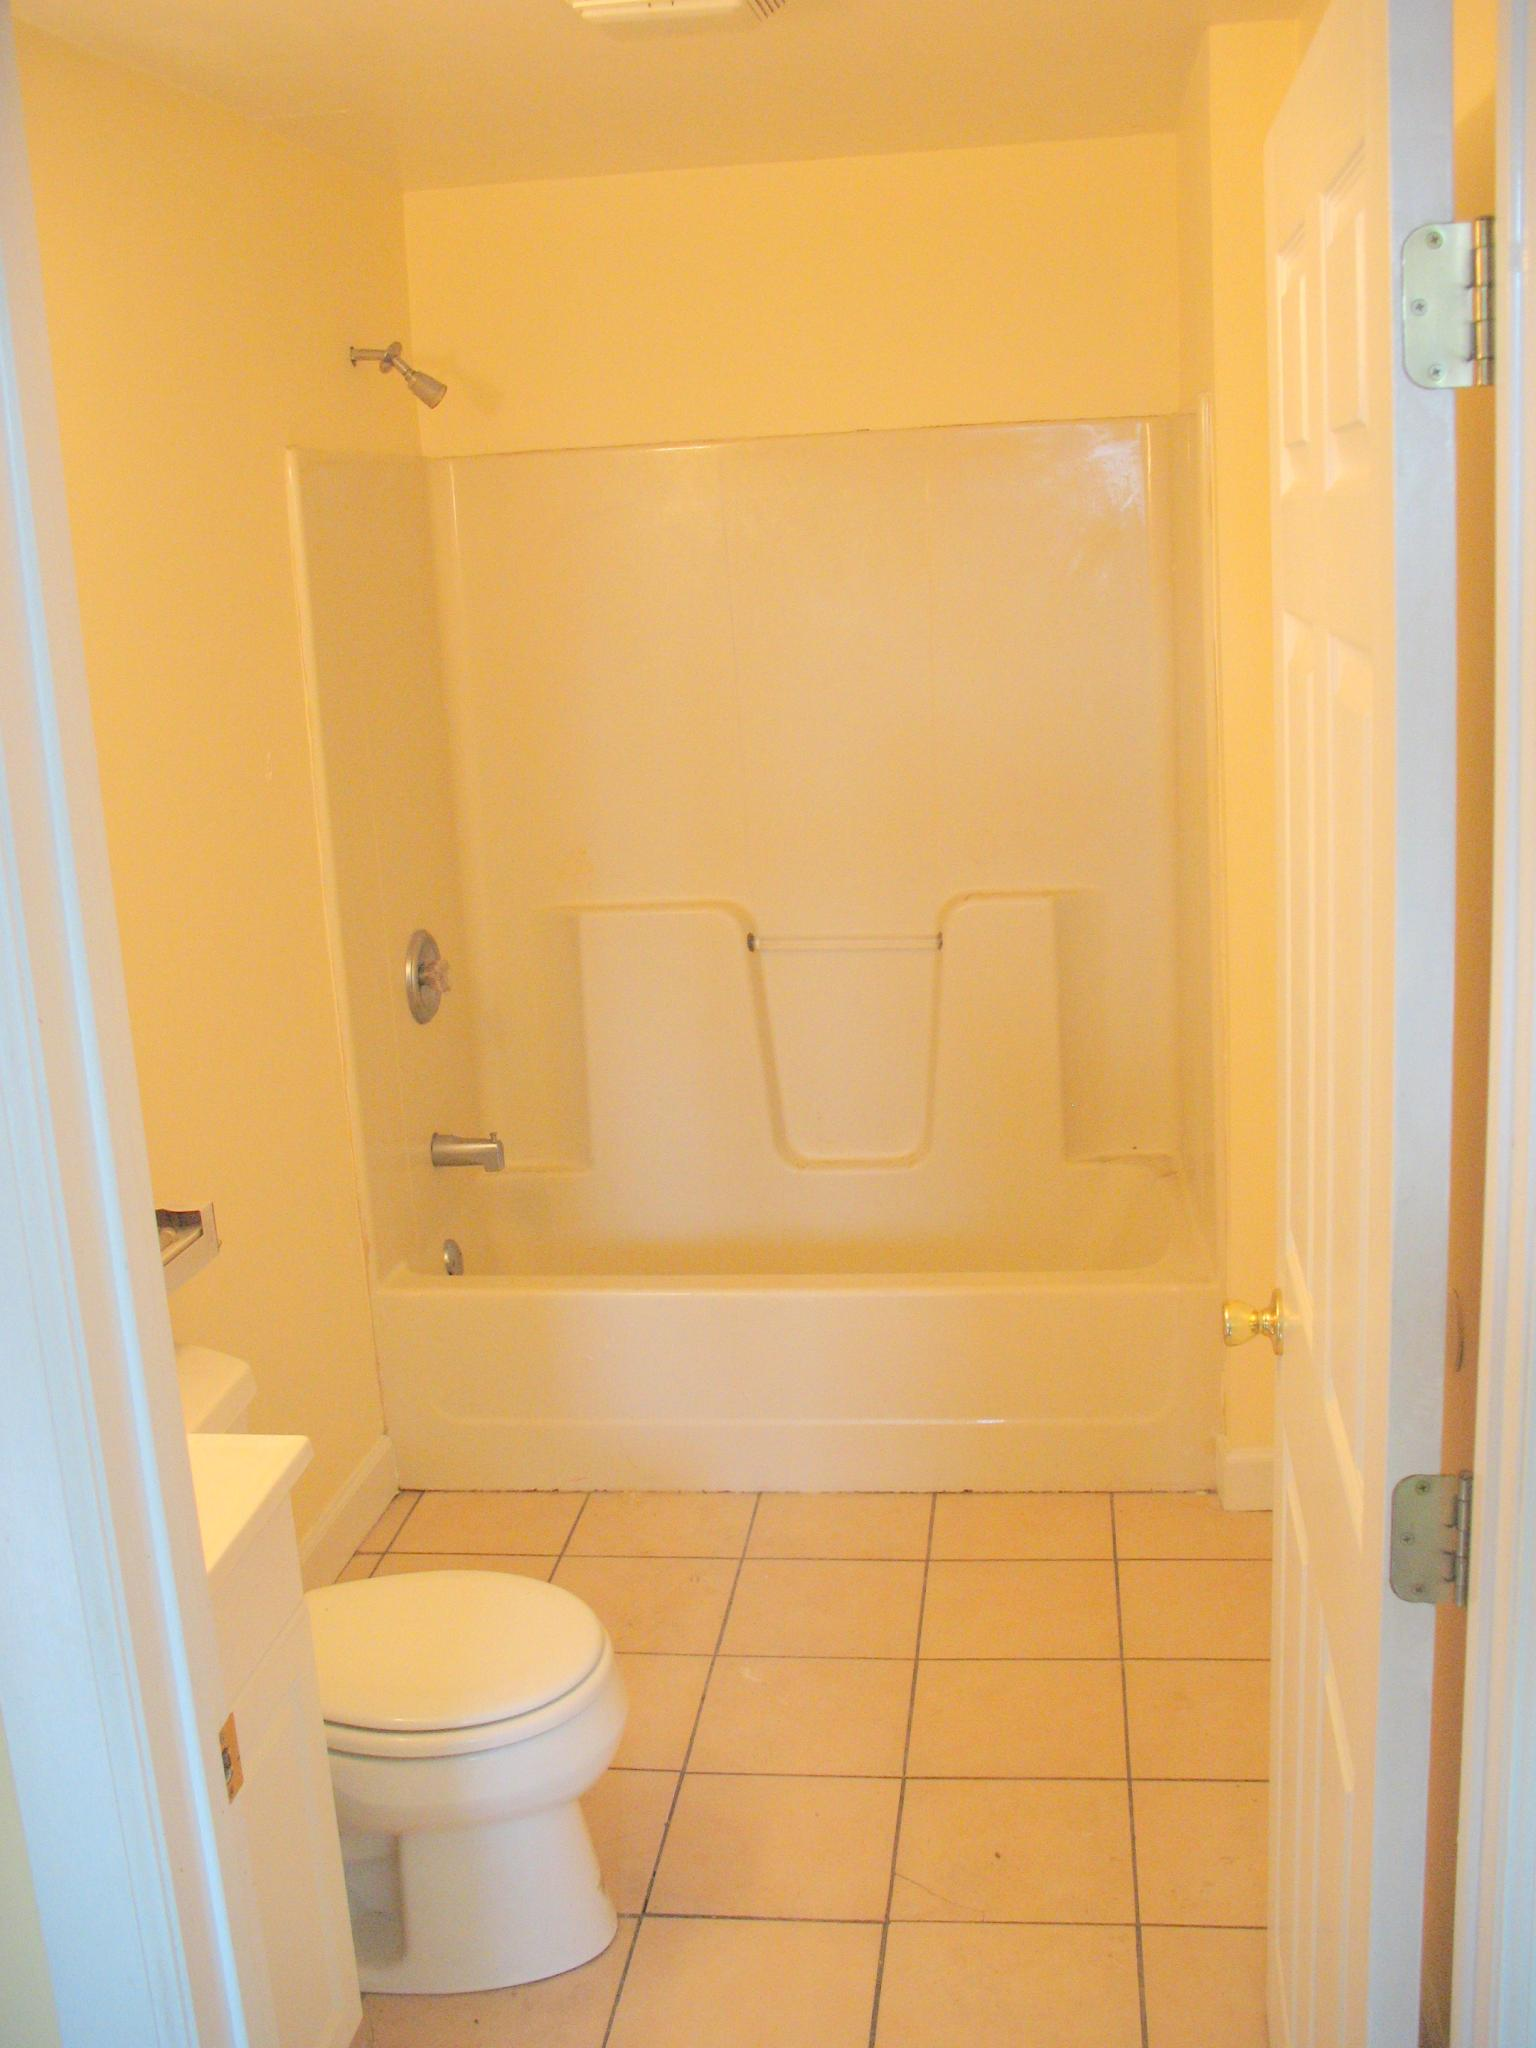 48 a Mary Street bathroom